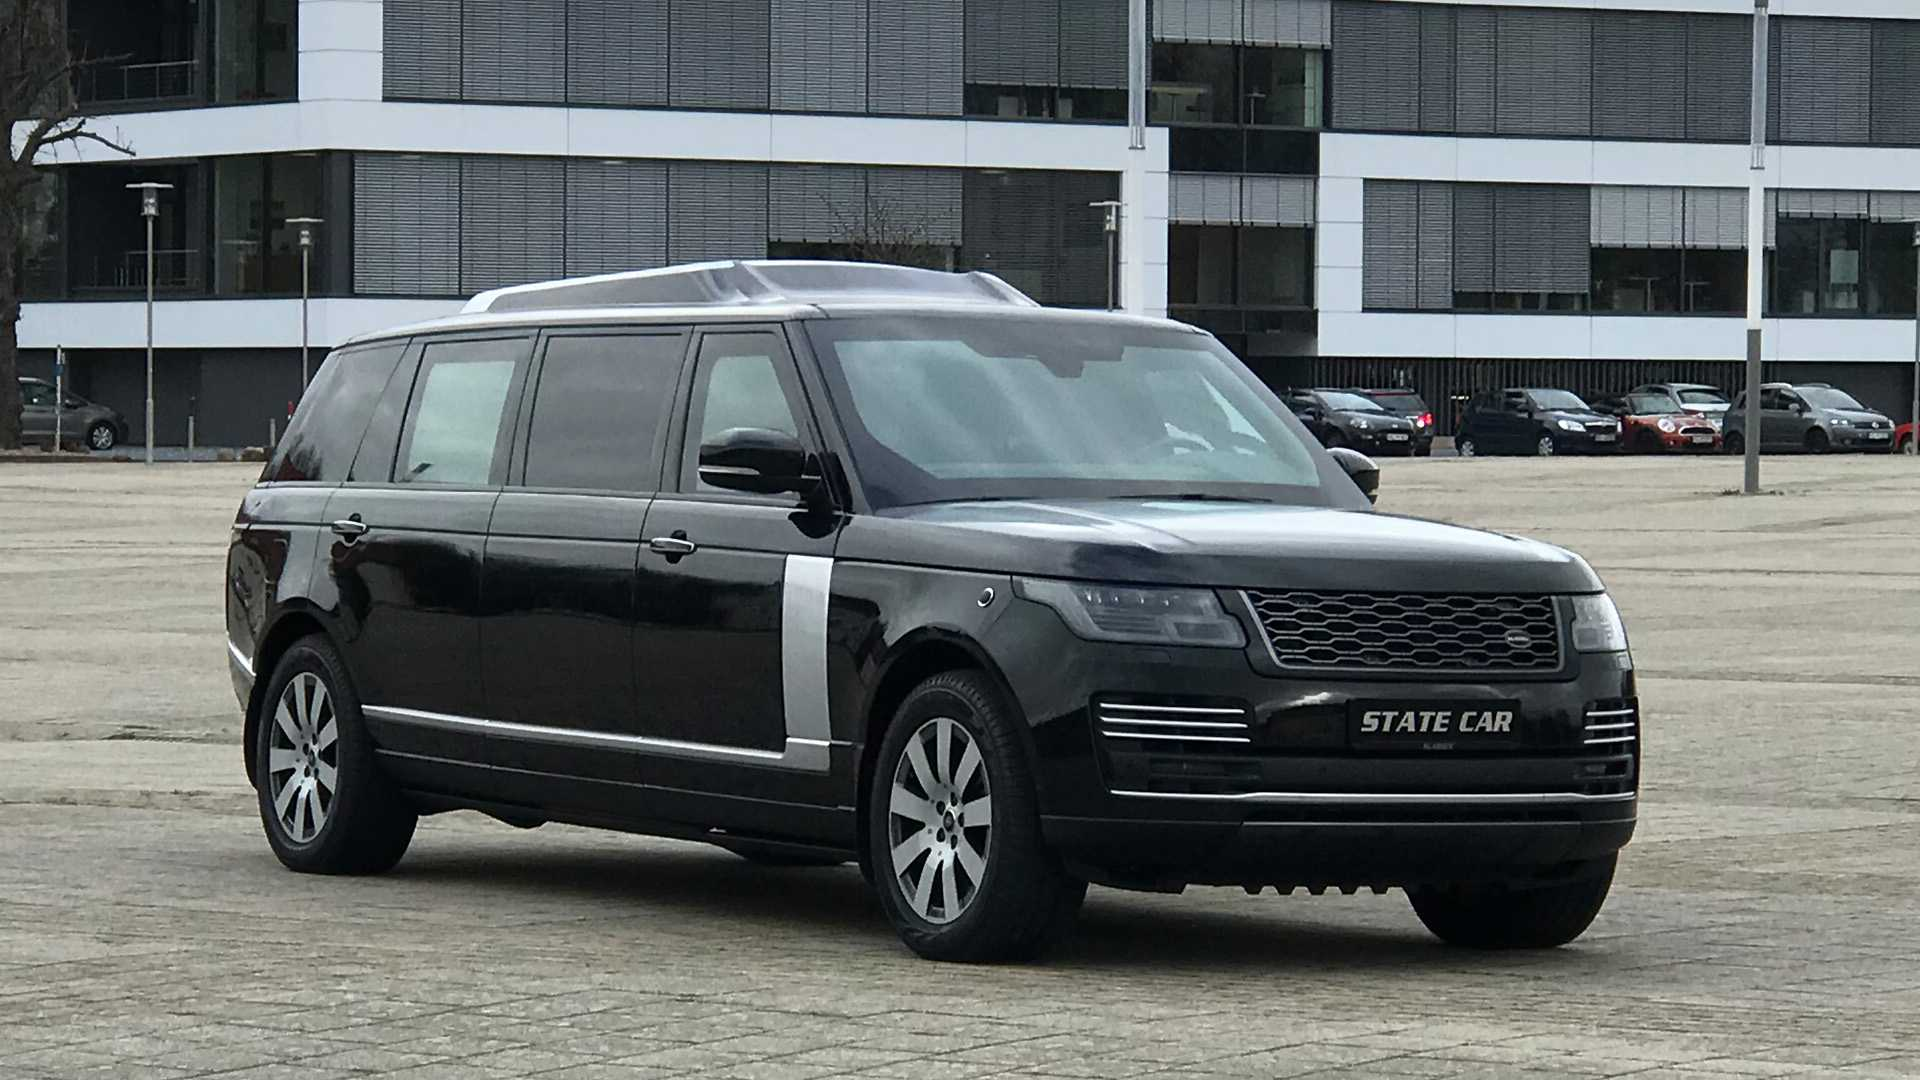 klassen-stretched-land-rover-range-rover-autobiography-20